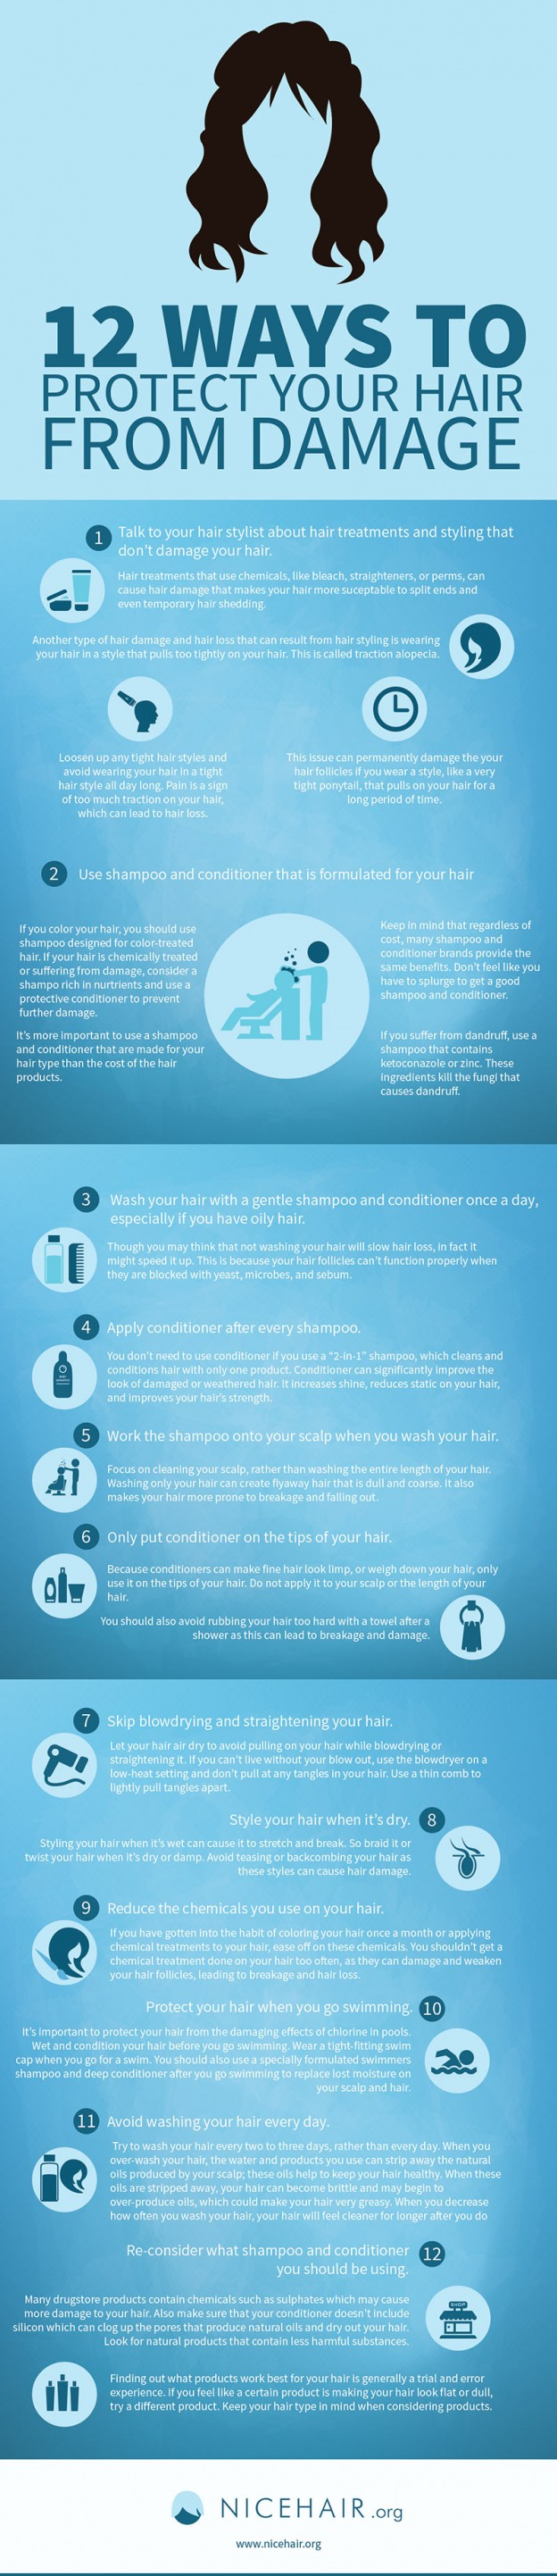 12 Ways To Protect Your Hair From Damage infographic